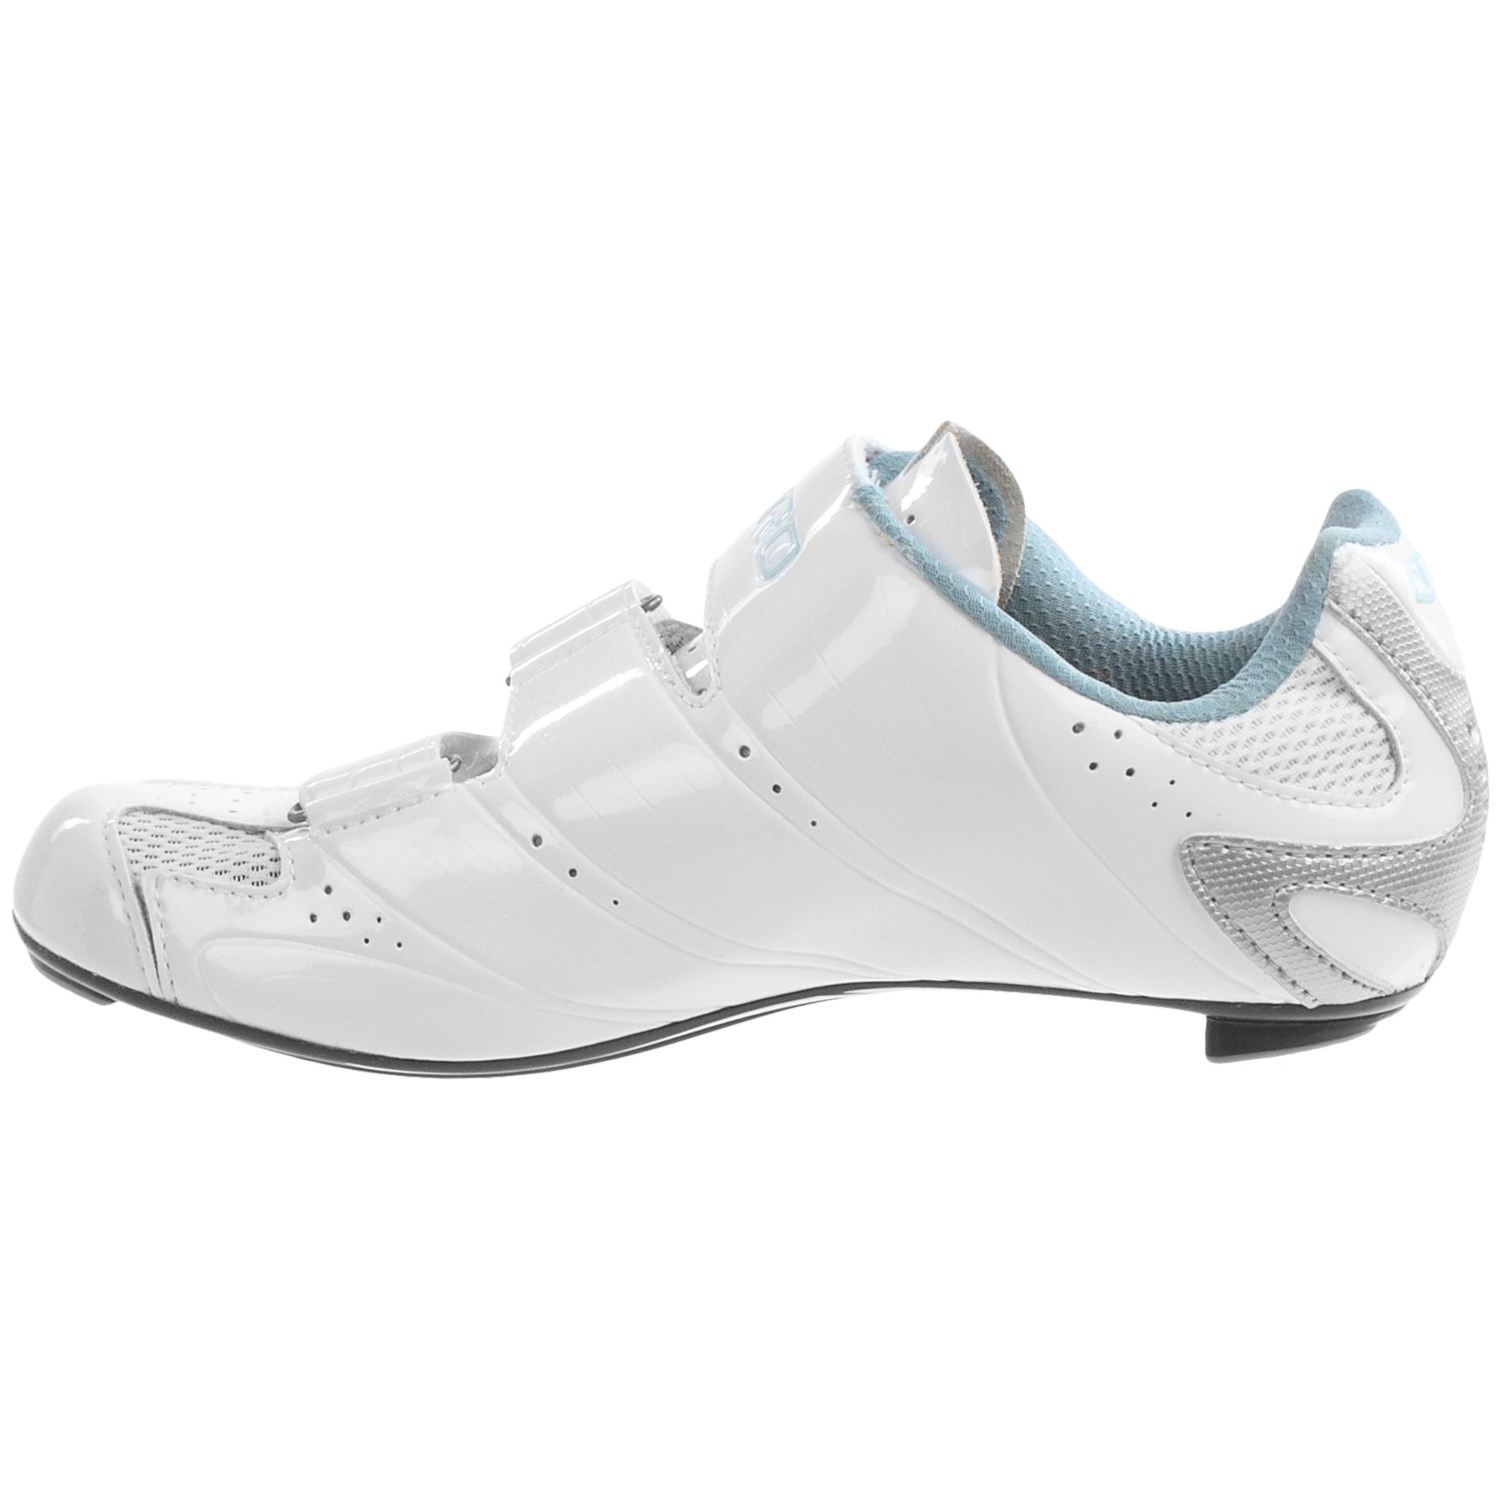 Buying Road Cycling Shoes